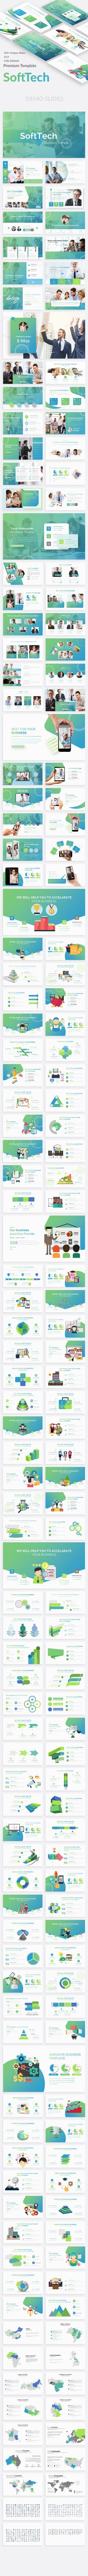 SoftTech Business Google Slide Template #project presentation #marketing • Download ➝ https://graphicriver.net/item/softtech-business-google-slide-template/21274300?ref=pxcr